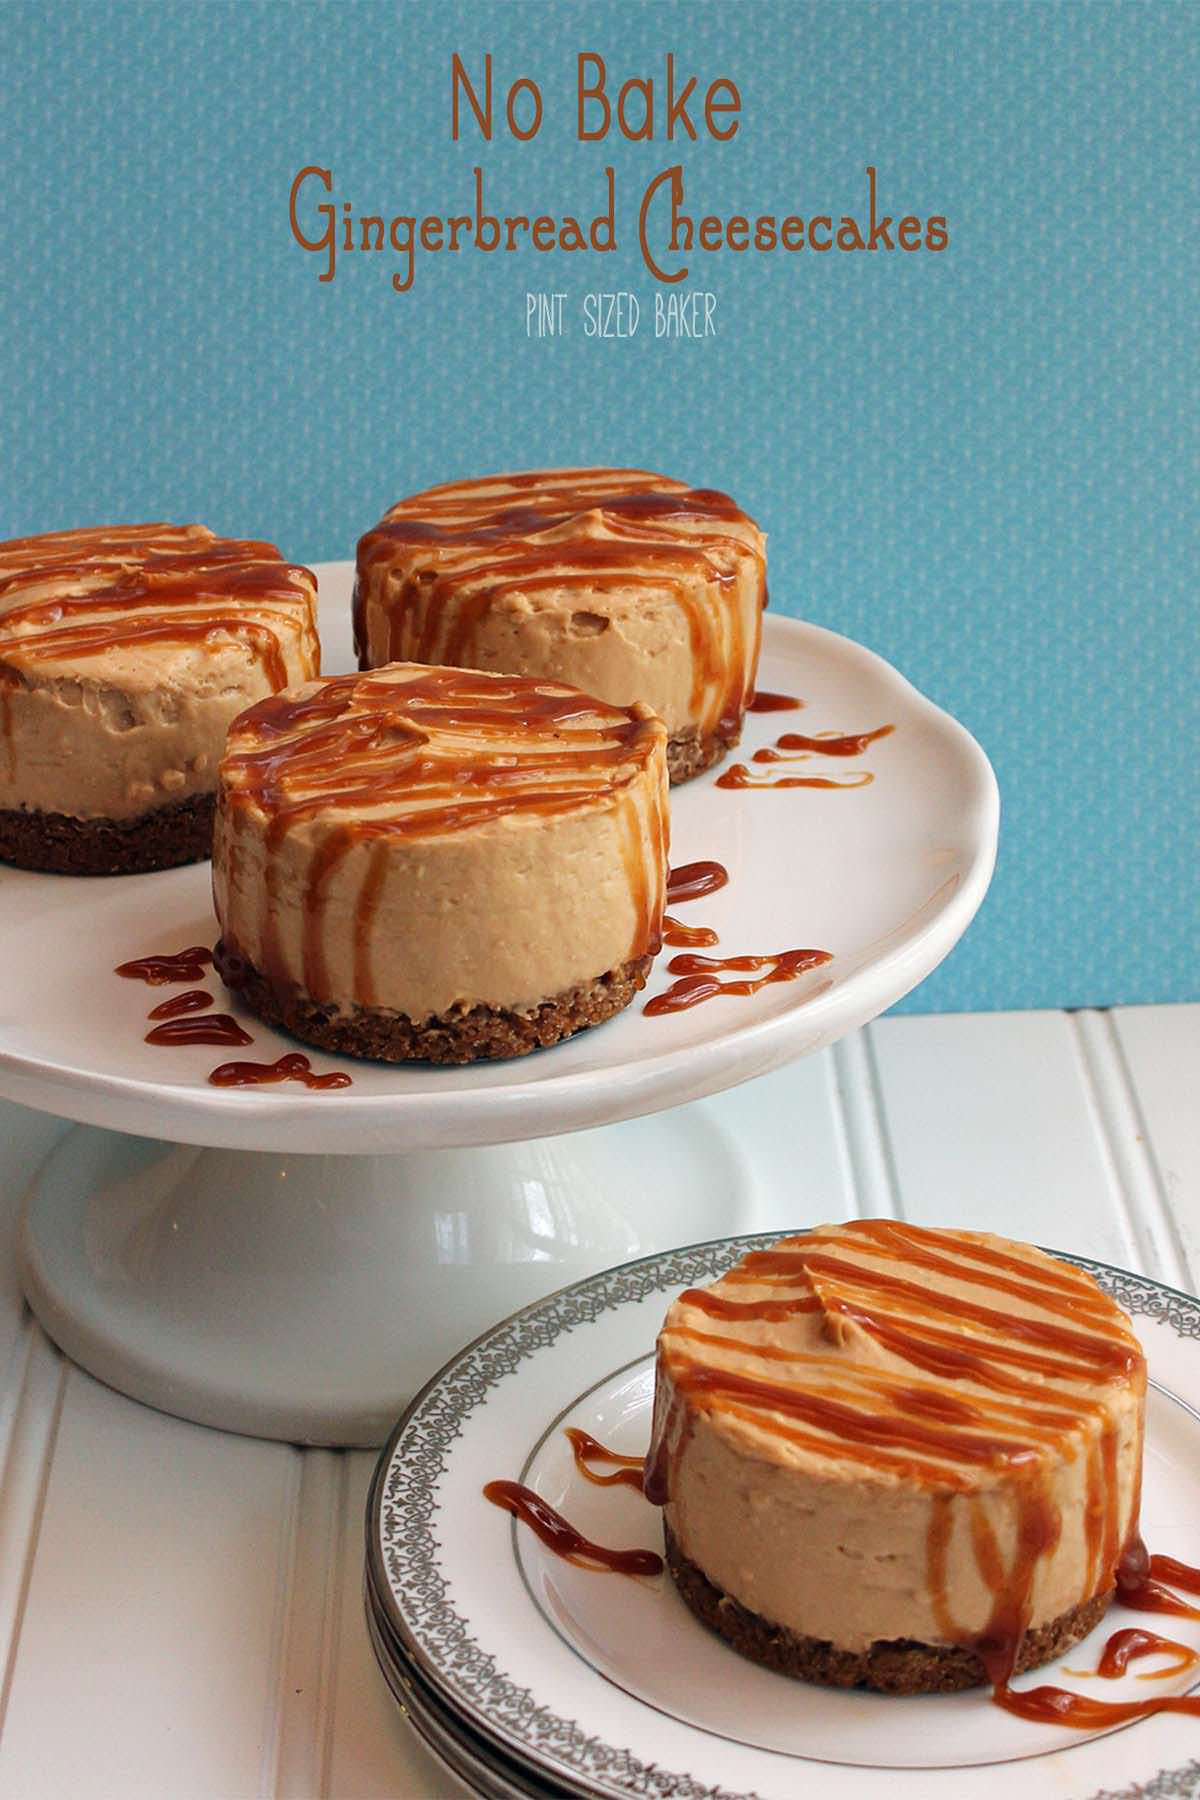 This Gingerbread Pudding Cheesecake with Caramel Sauce and Biscoff Cookie Crust is so delicious and a great treat for everyone!